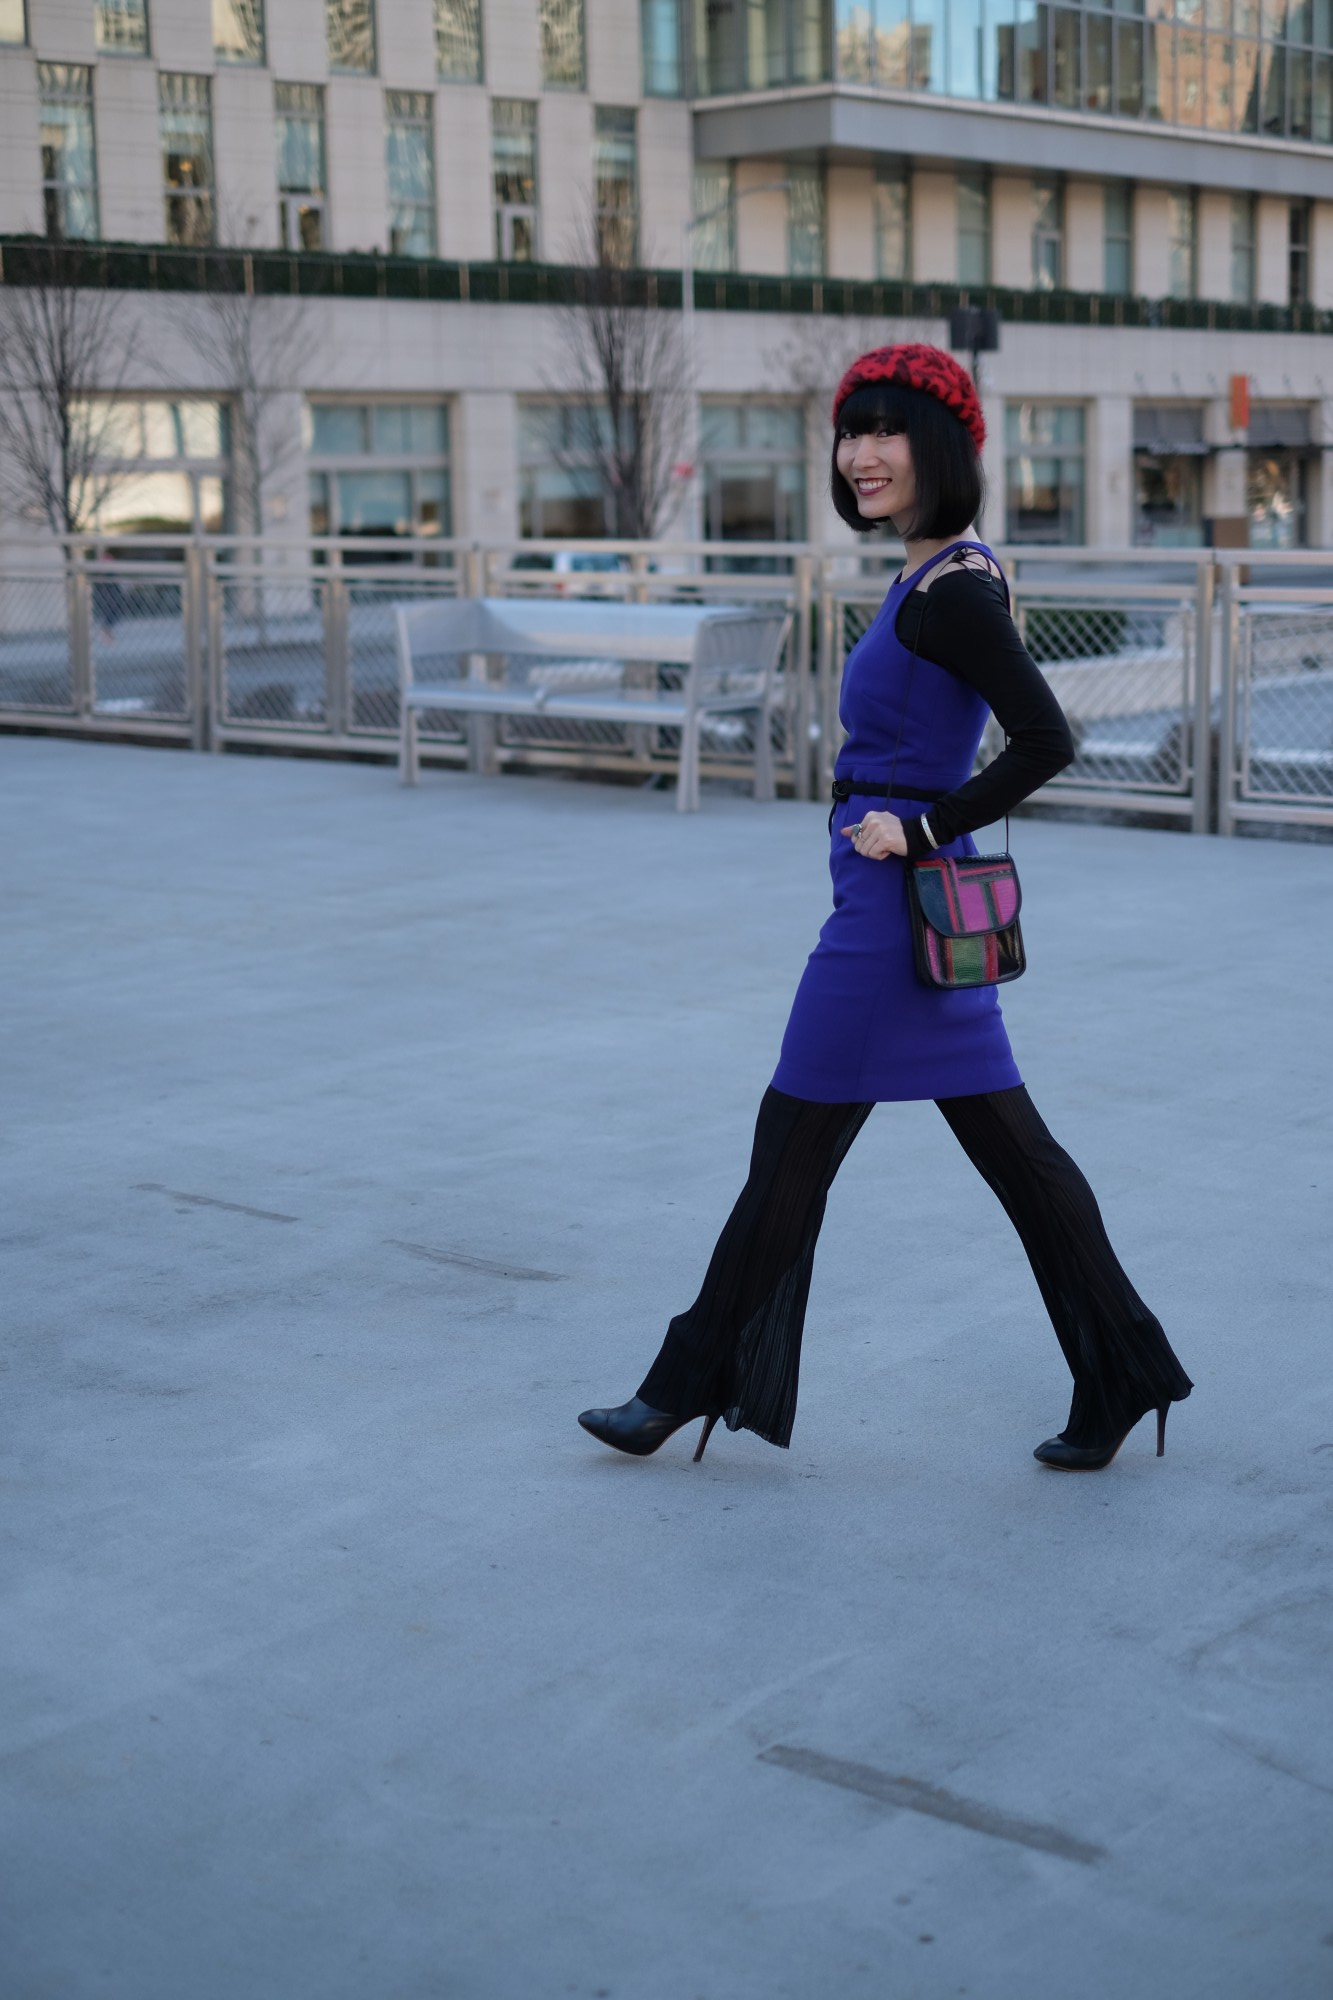 japanese girl in purple dress and red beret